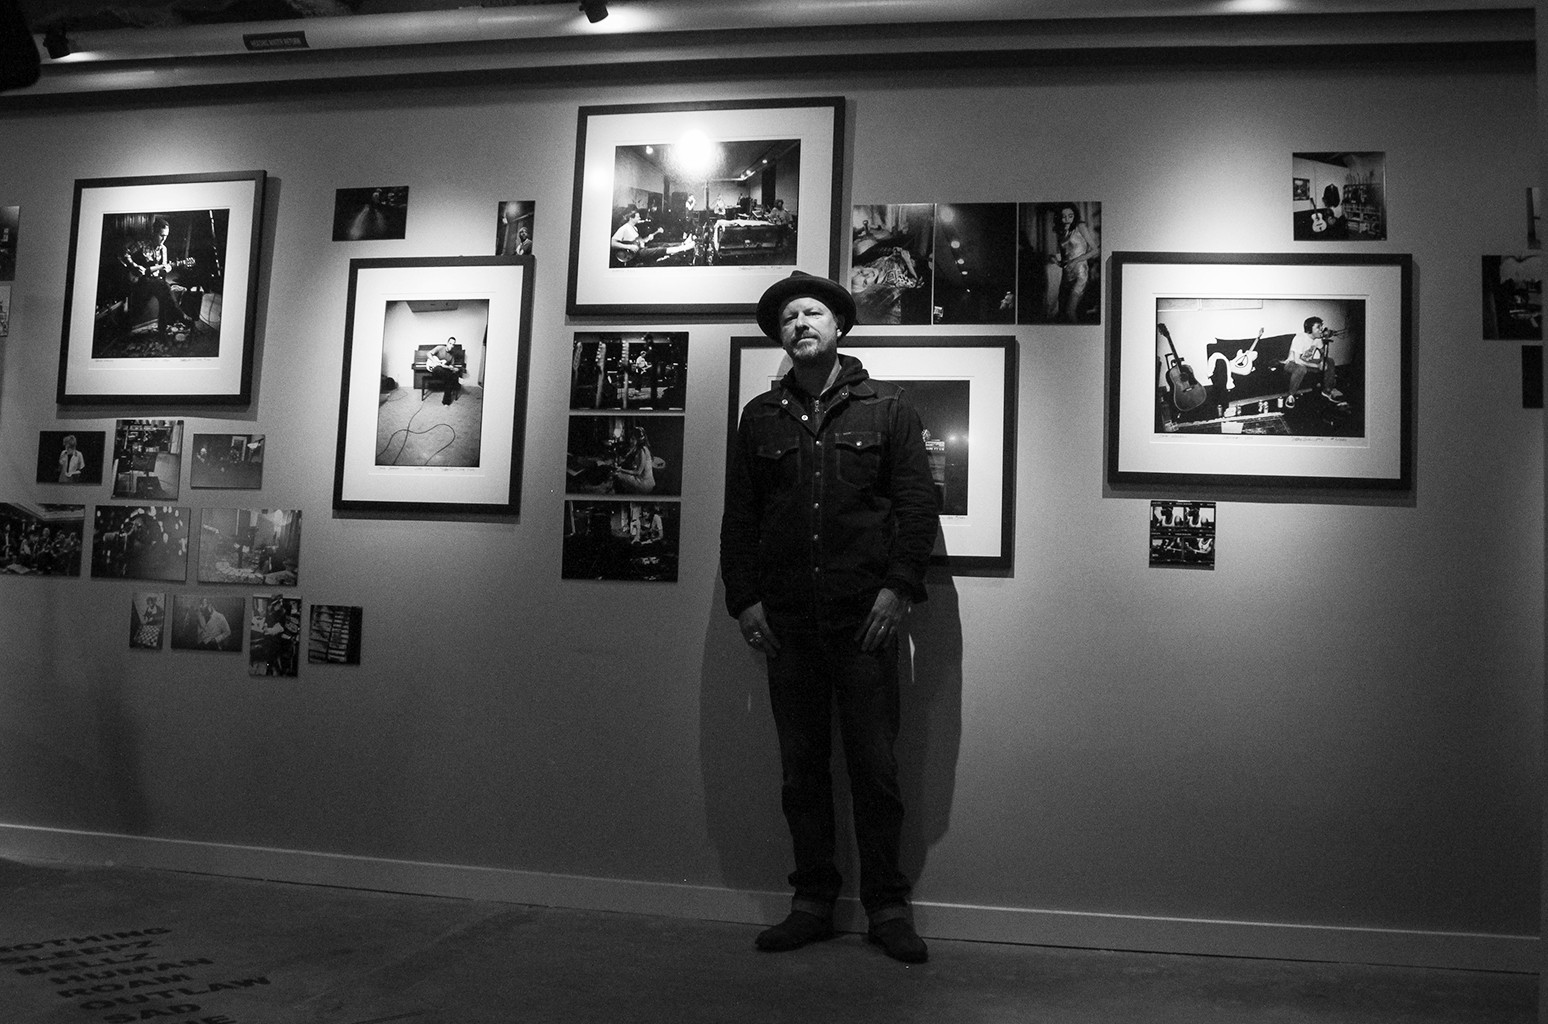 Danny Clinch with photos at his exhibit 'Transparent' at The Asbury Hotel.